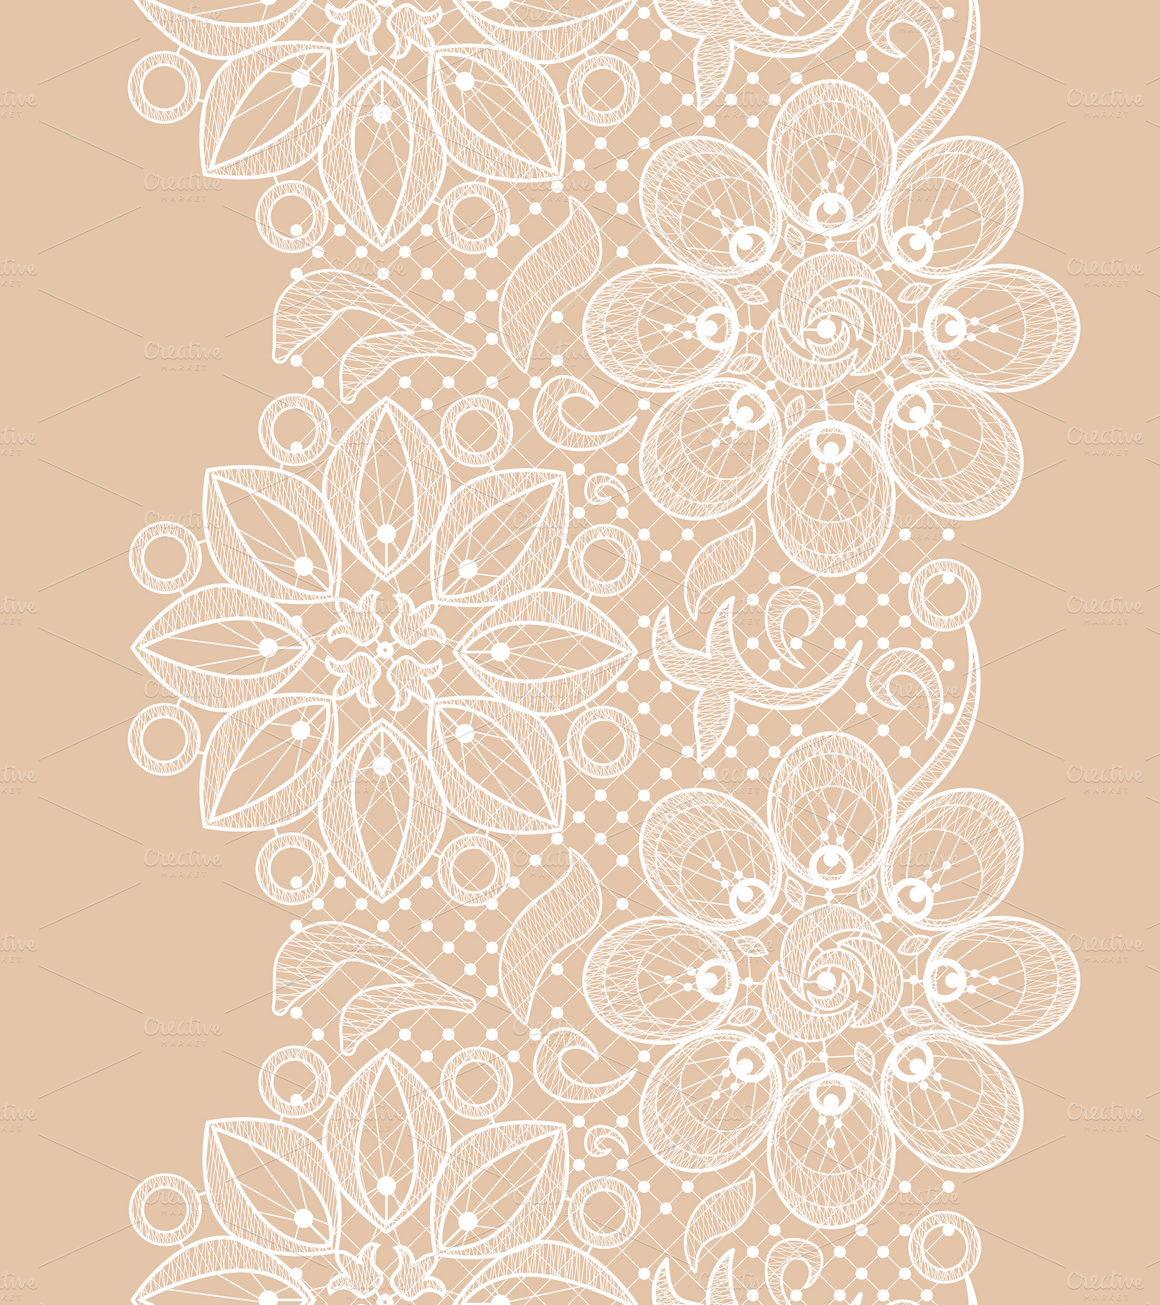 lace background images lace pattern background 1301